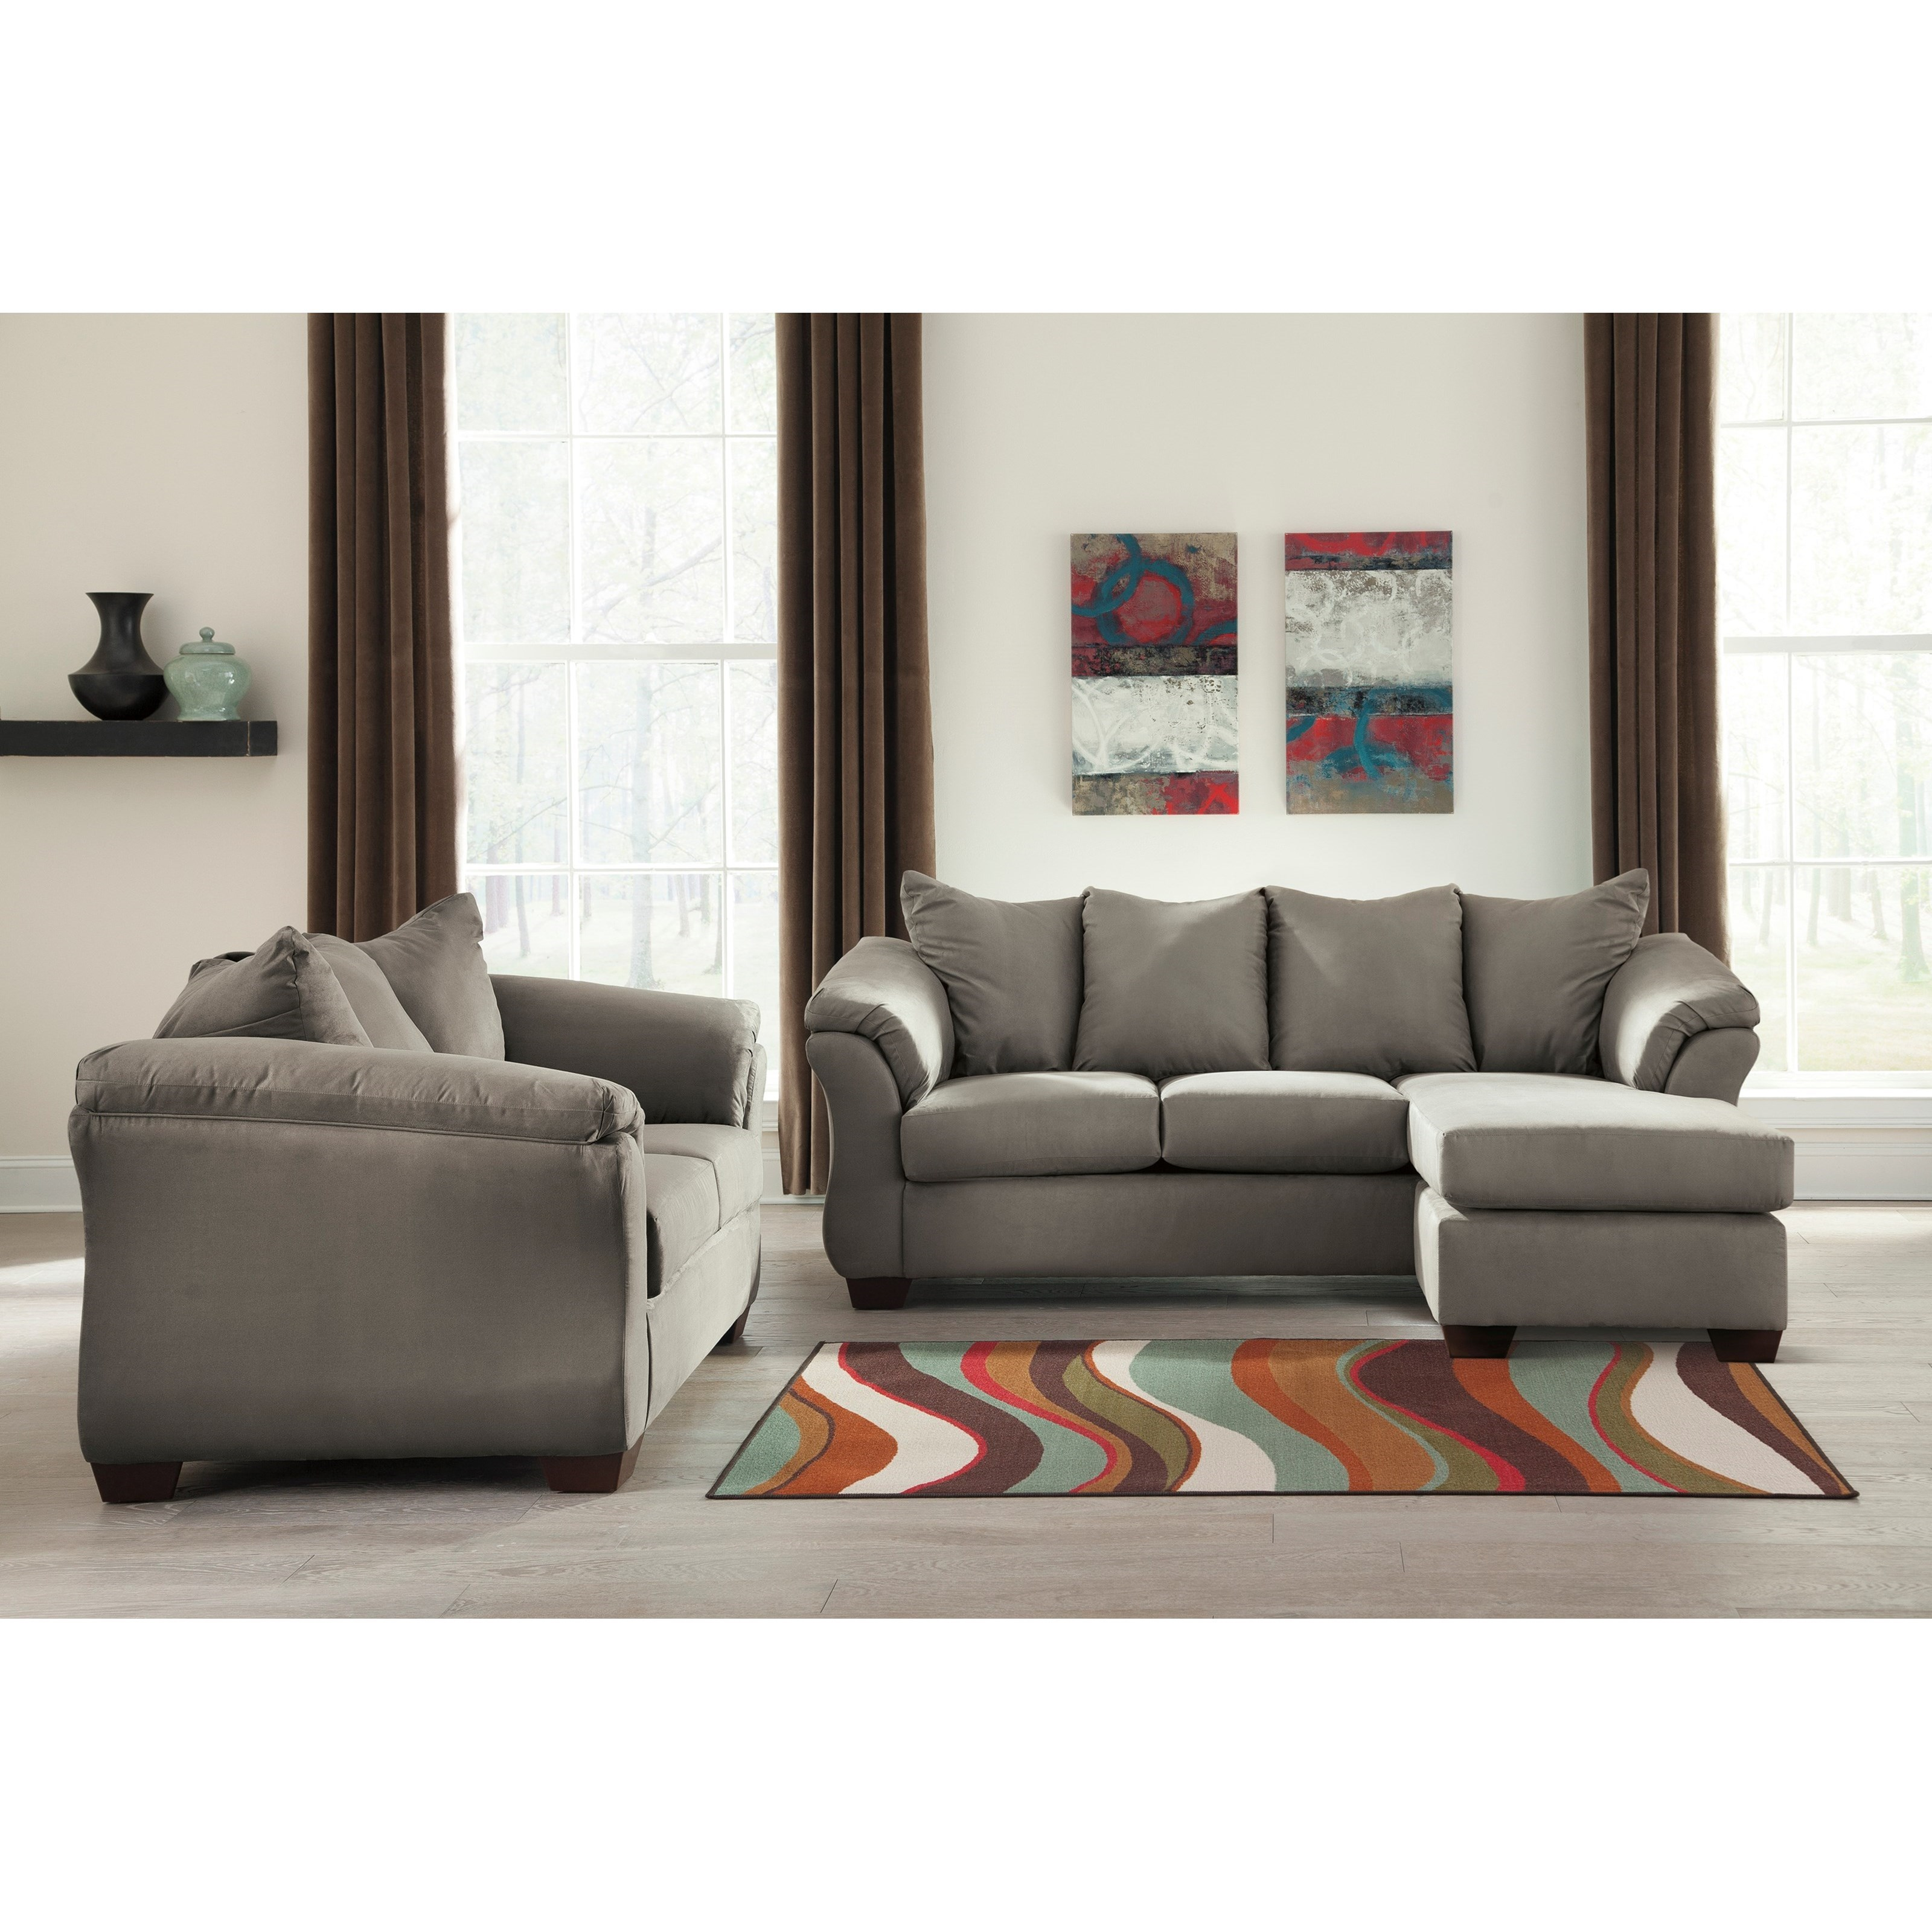 Darcy - Cobblestone Stationary Living Room Group by Signature Design by Ashley at Northeast Factory Direct